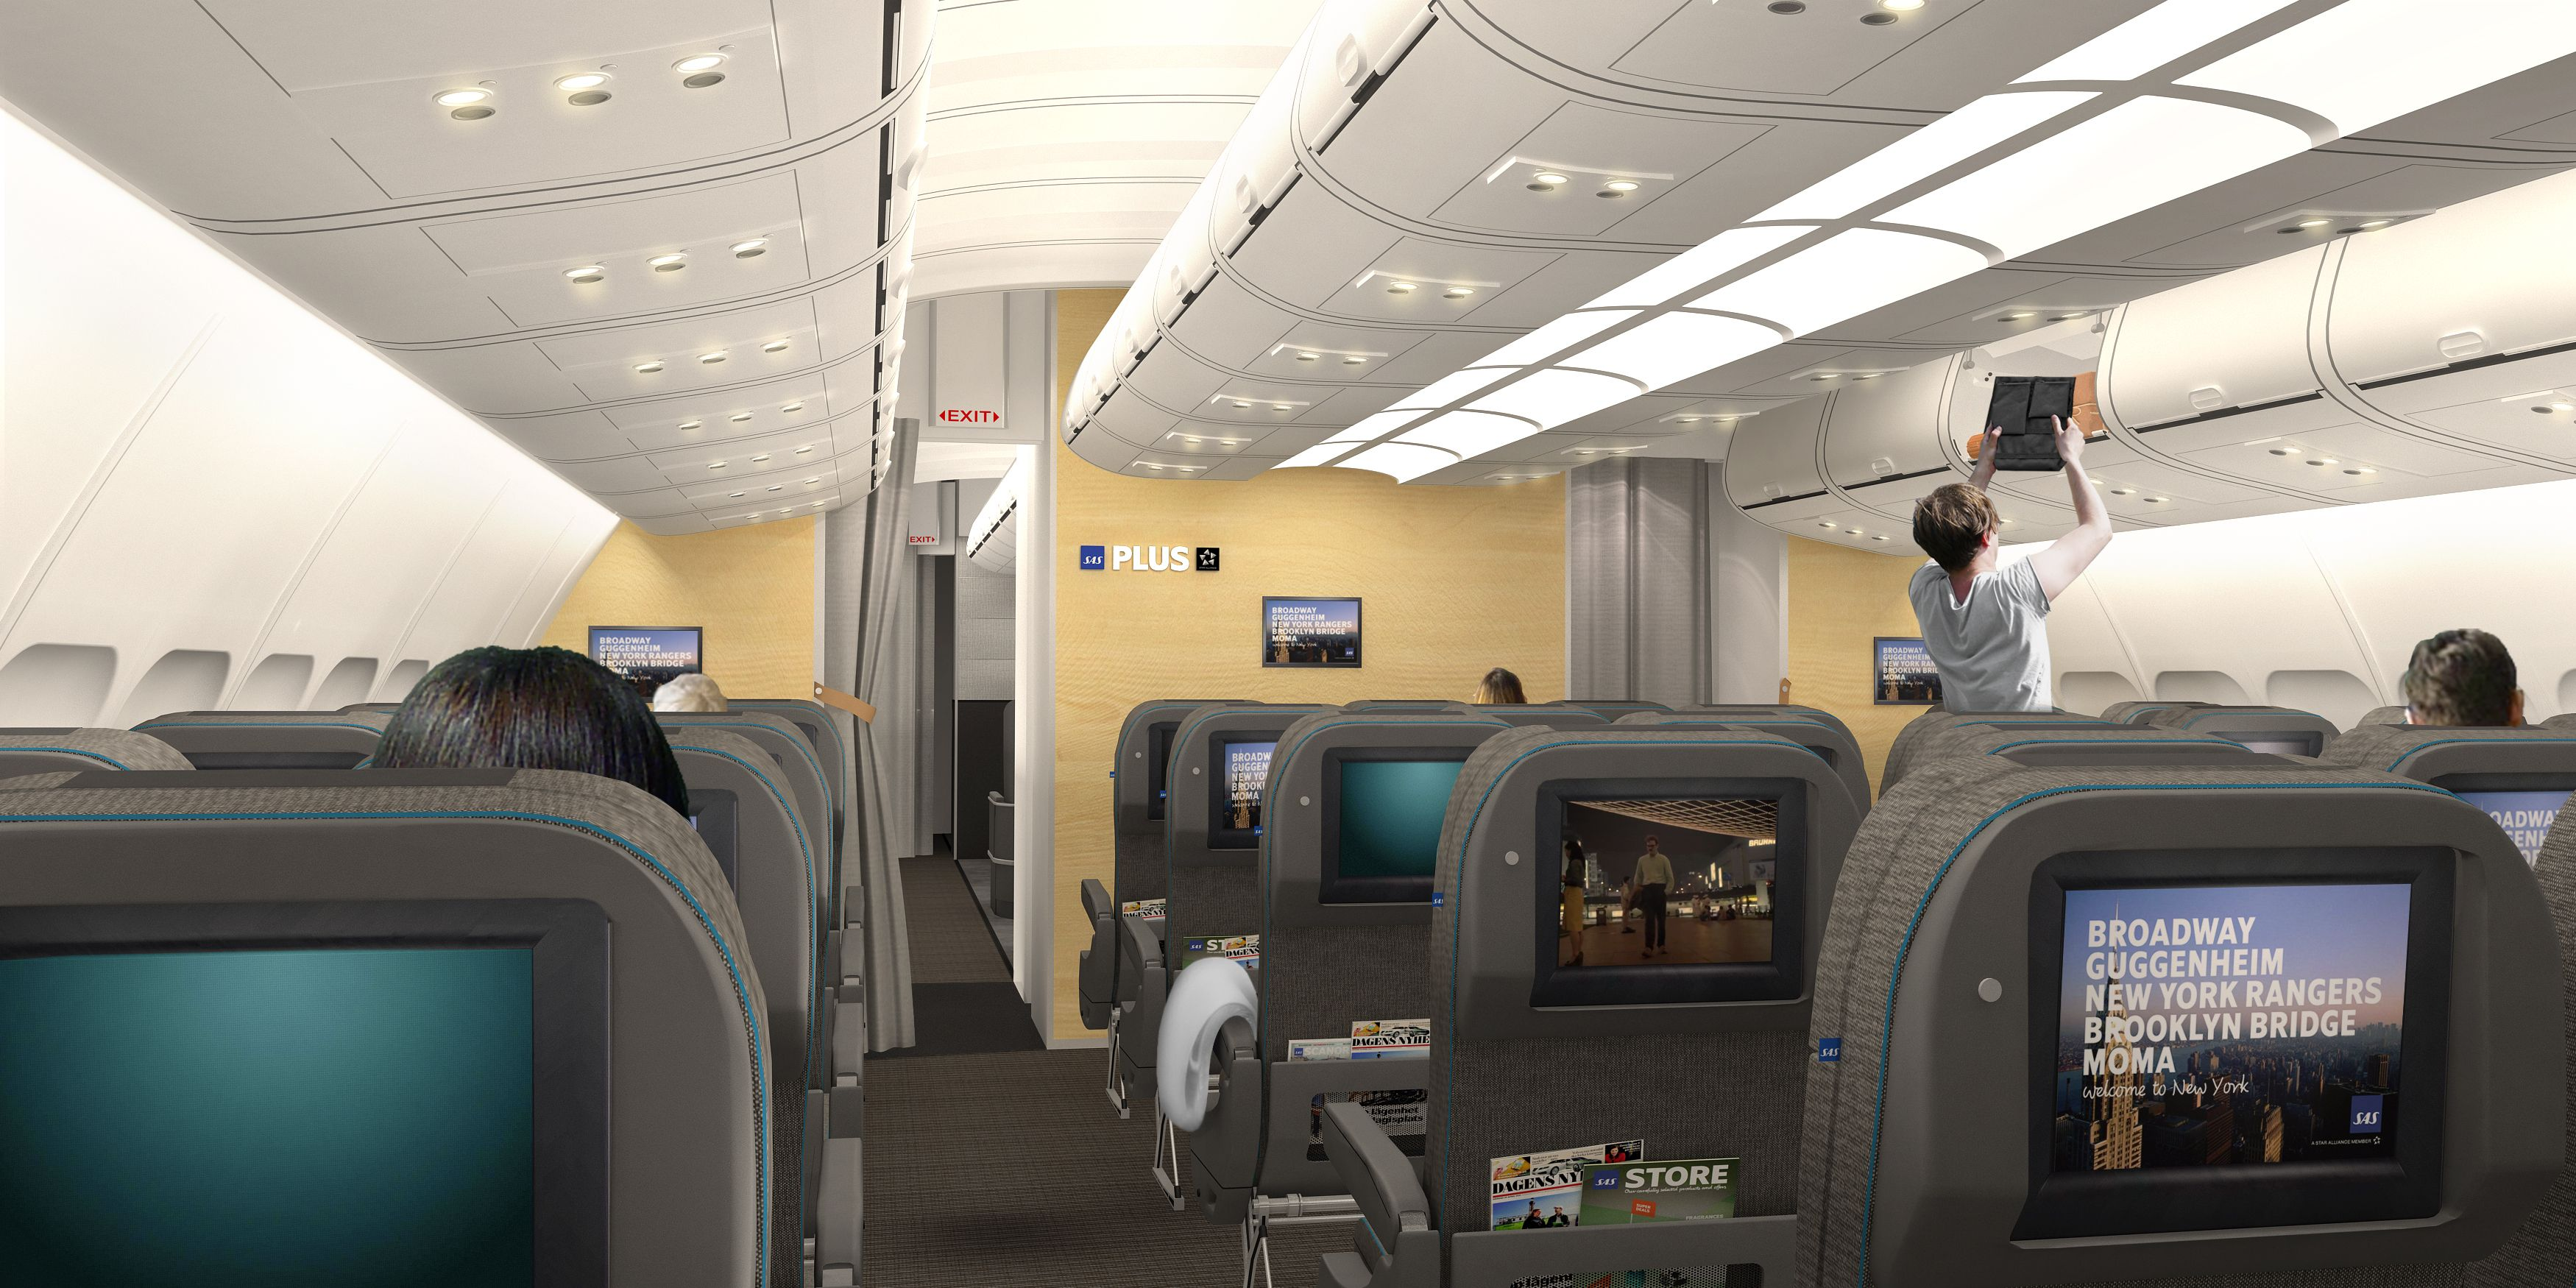 Sas Introduce Brand New Long Haul Interiors Aircraft Interiors Sas Airlines Scandinavian Airlines System